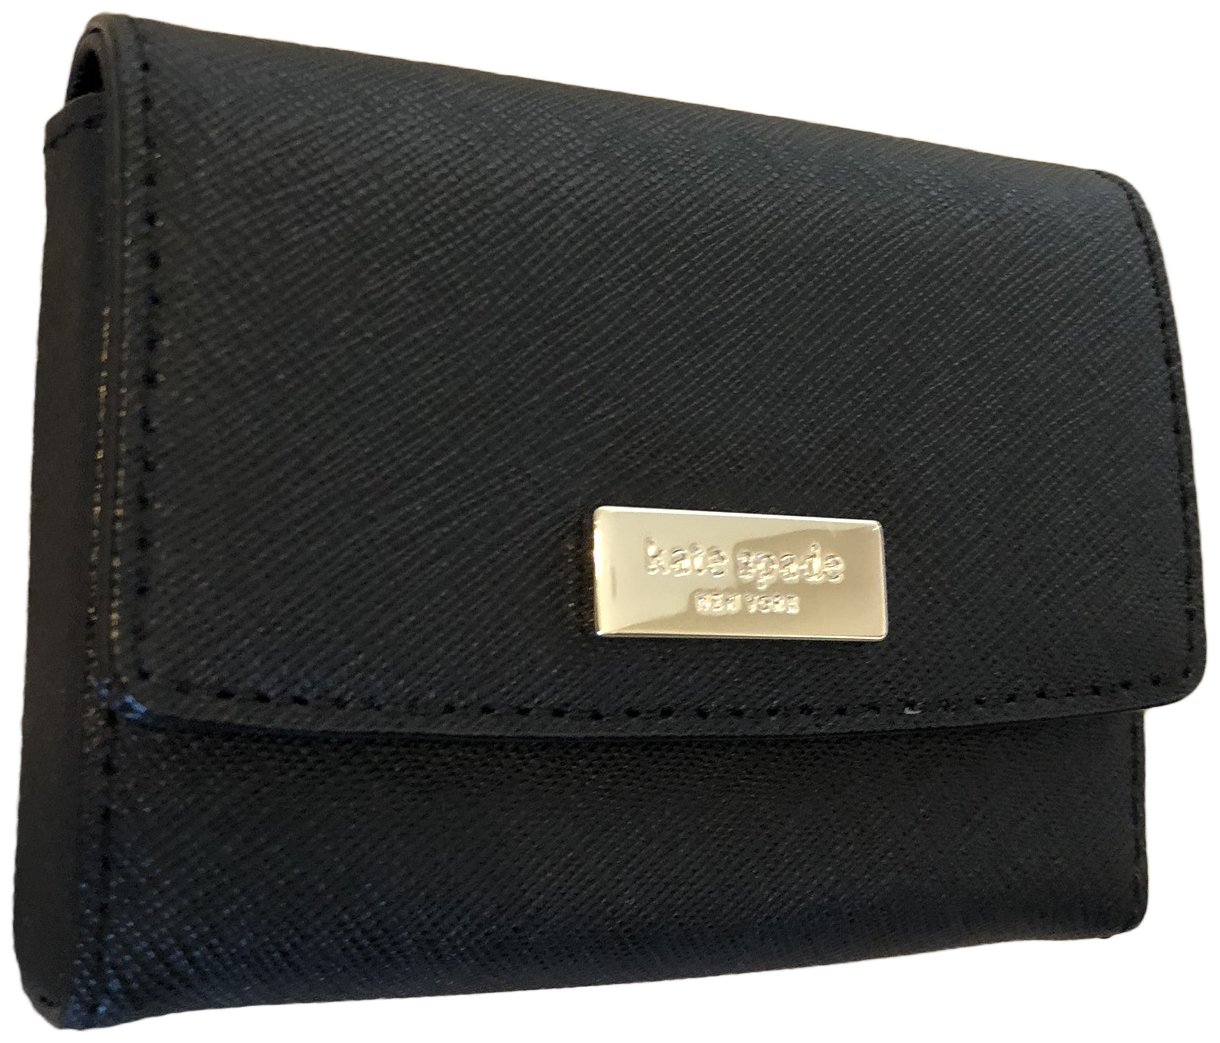 Kate Spade New York Saffiano Leather Business Card Case Holder Black